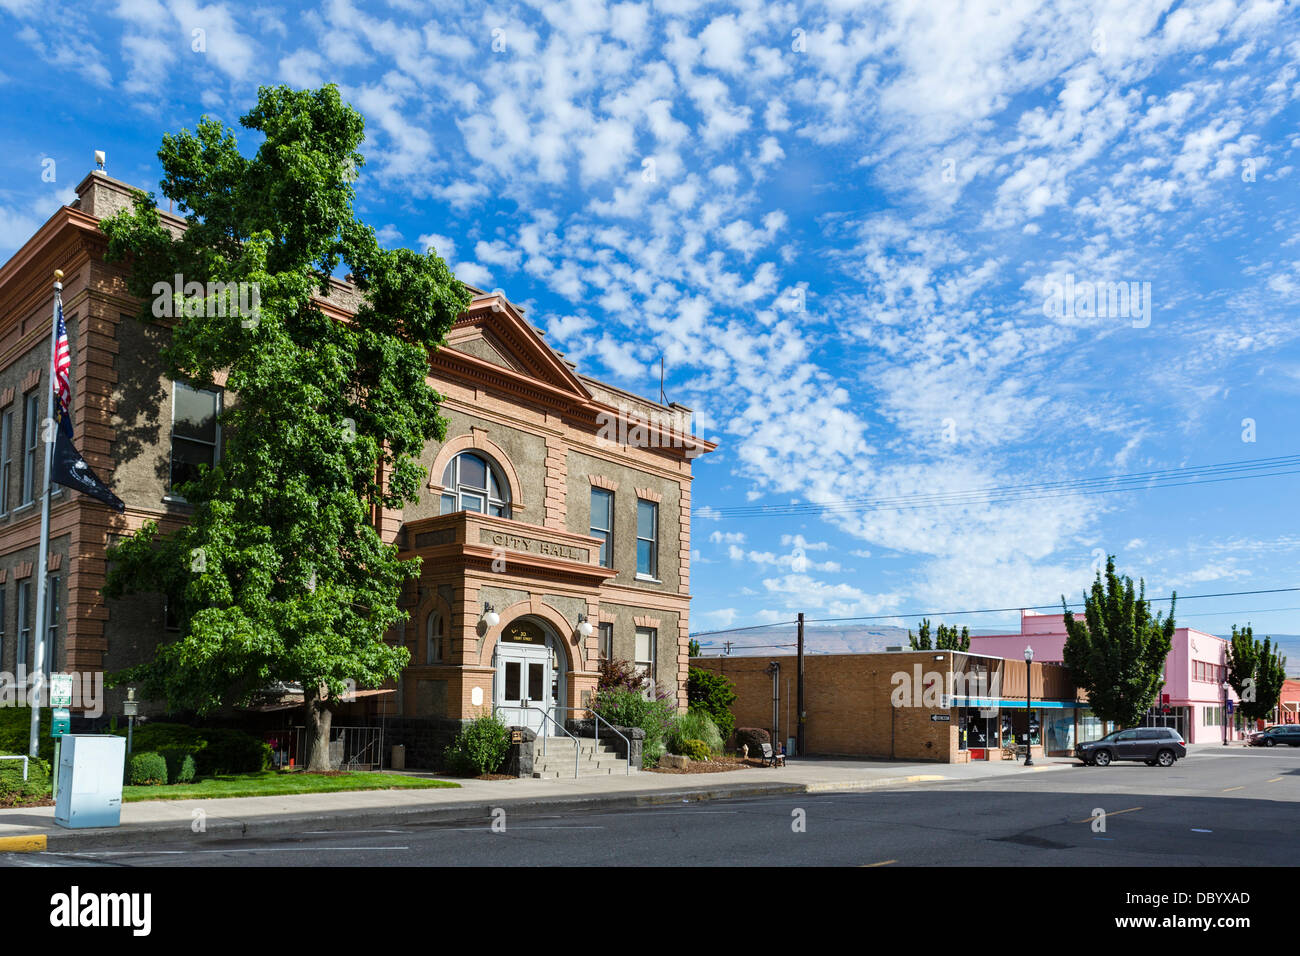 City Hall in downtown The Dalles, Oregon, USA - Stock Image